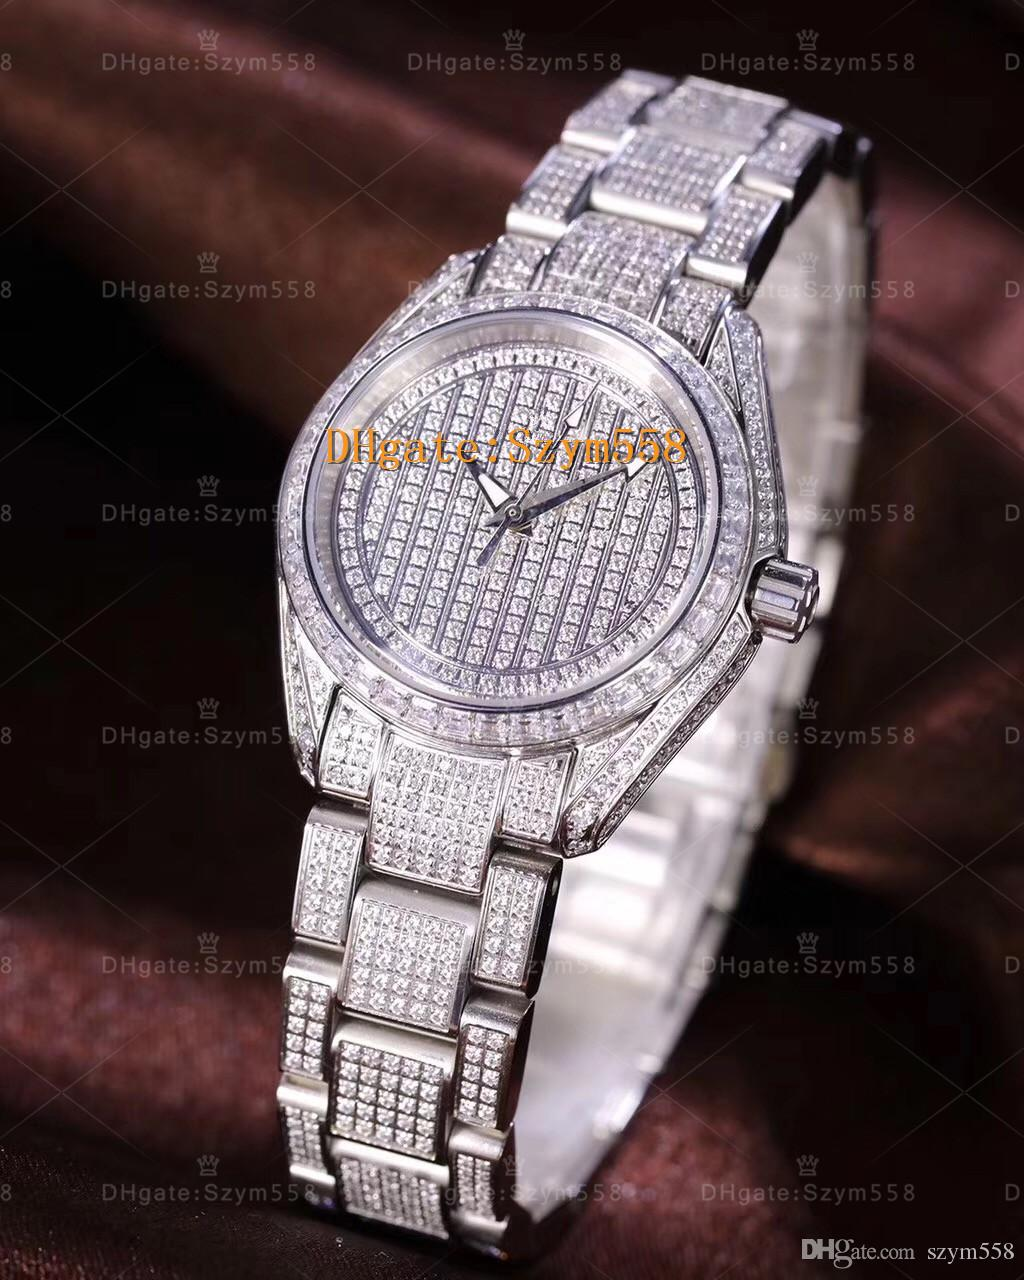 rolex watch dial price diamond in daytona pk role pakistan ladies paisaybachao